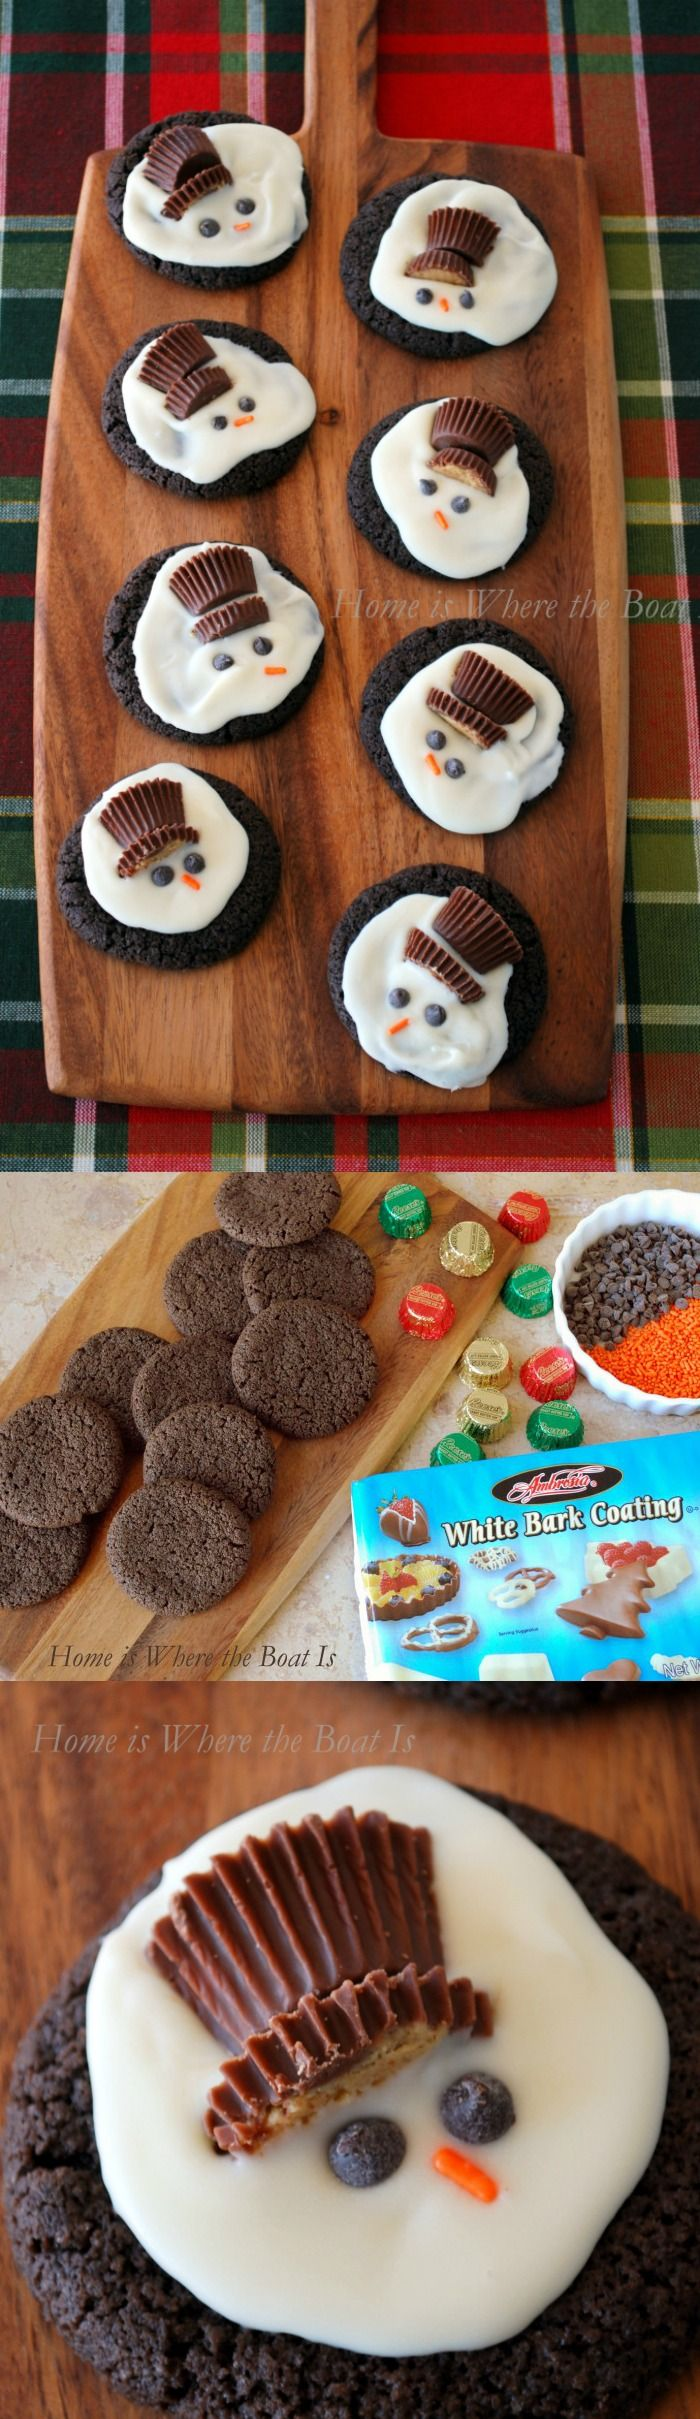 Melted Snowman Cookies   Home is Where the Boat Is